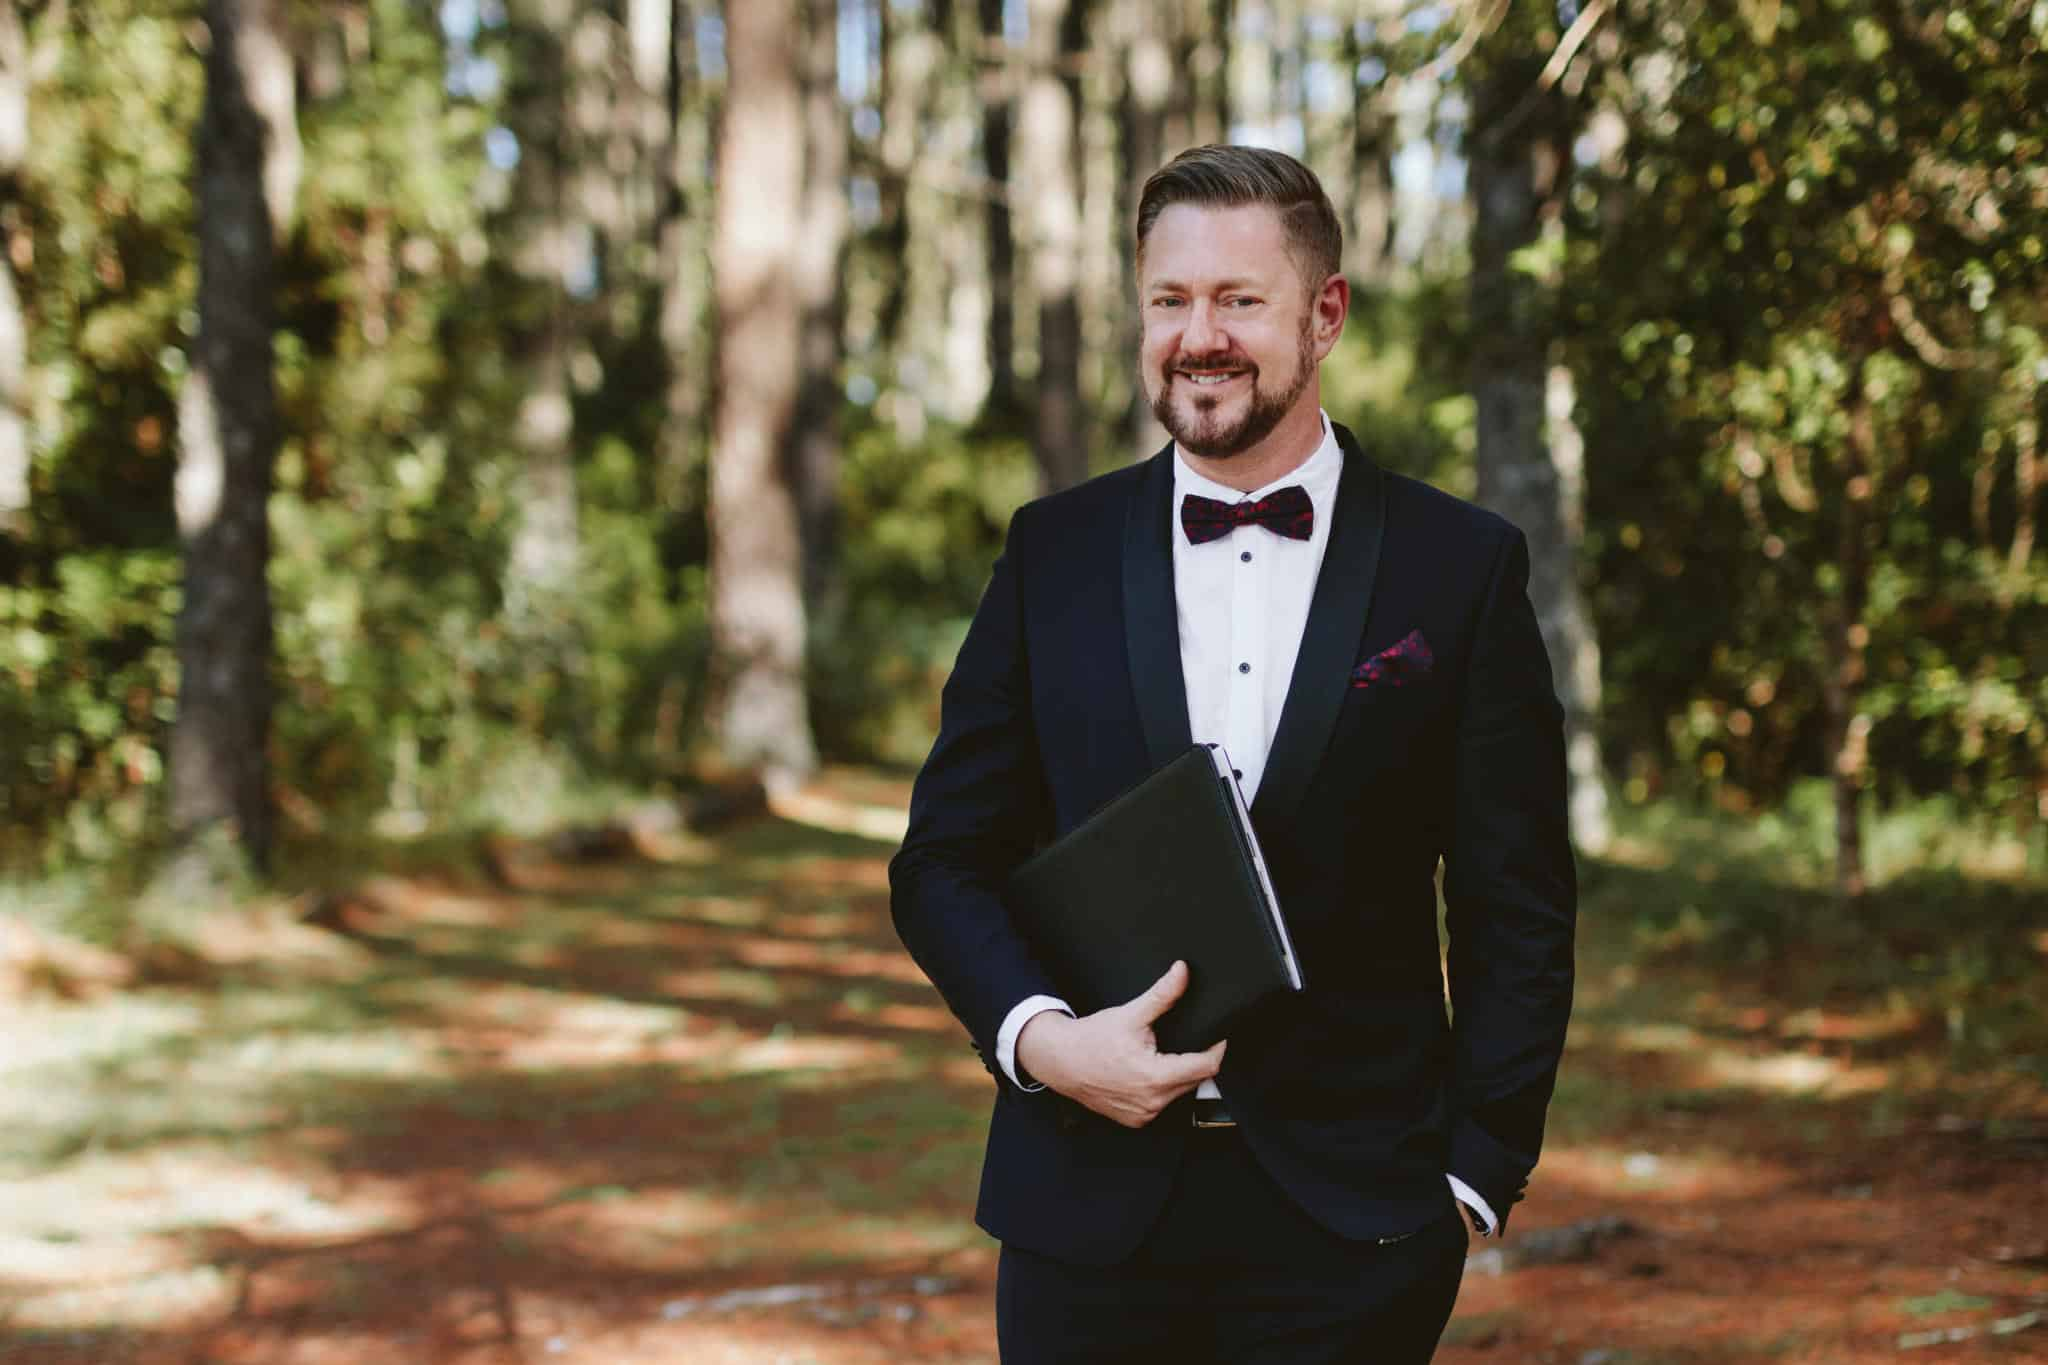 Woodland Wedding - Stephen Lee Sydney Marriage Celebrant